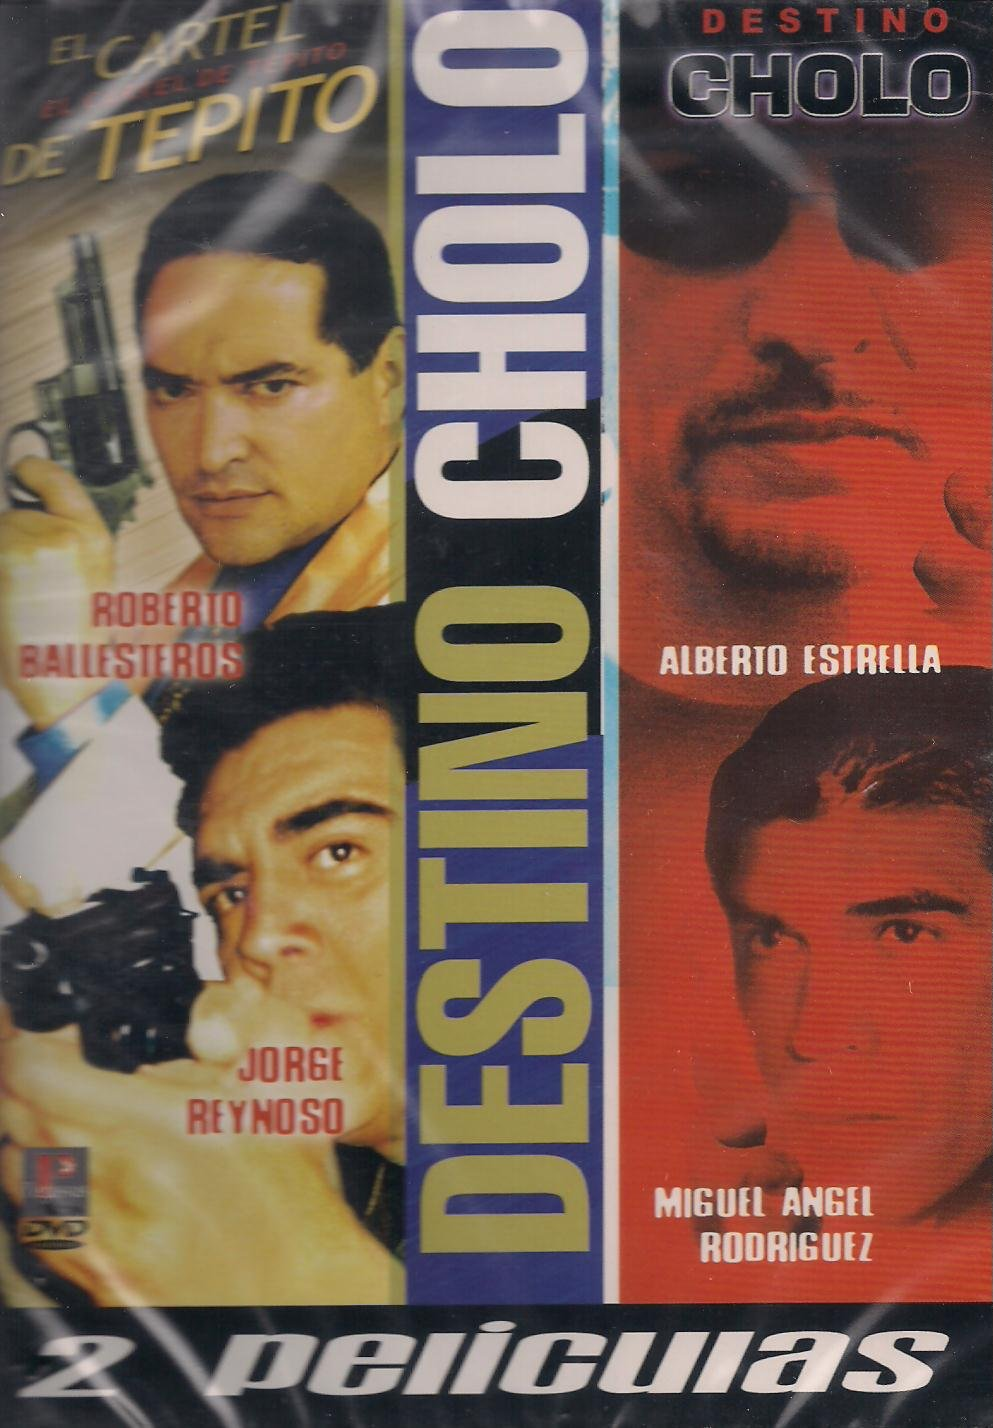 Amazon.com: DESTINO CHOLO/EL CARTEL DE TEPITO 2PACK: Movies & TV